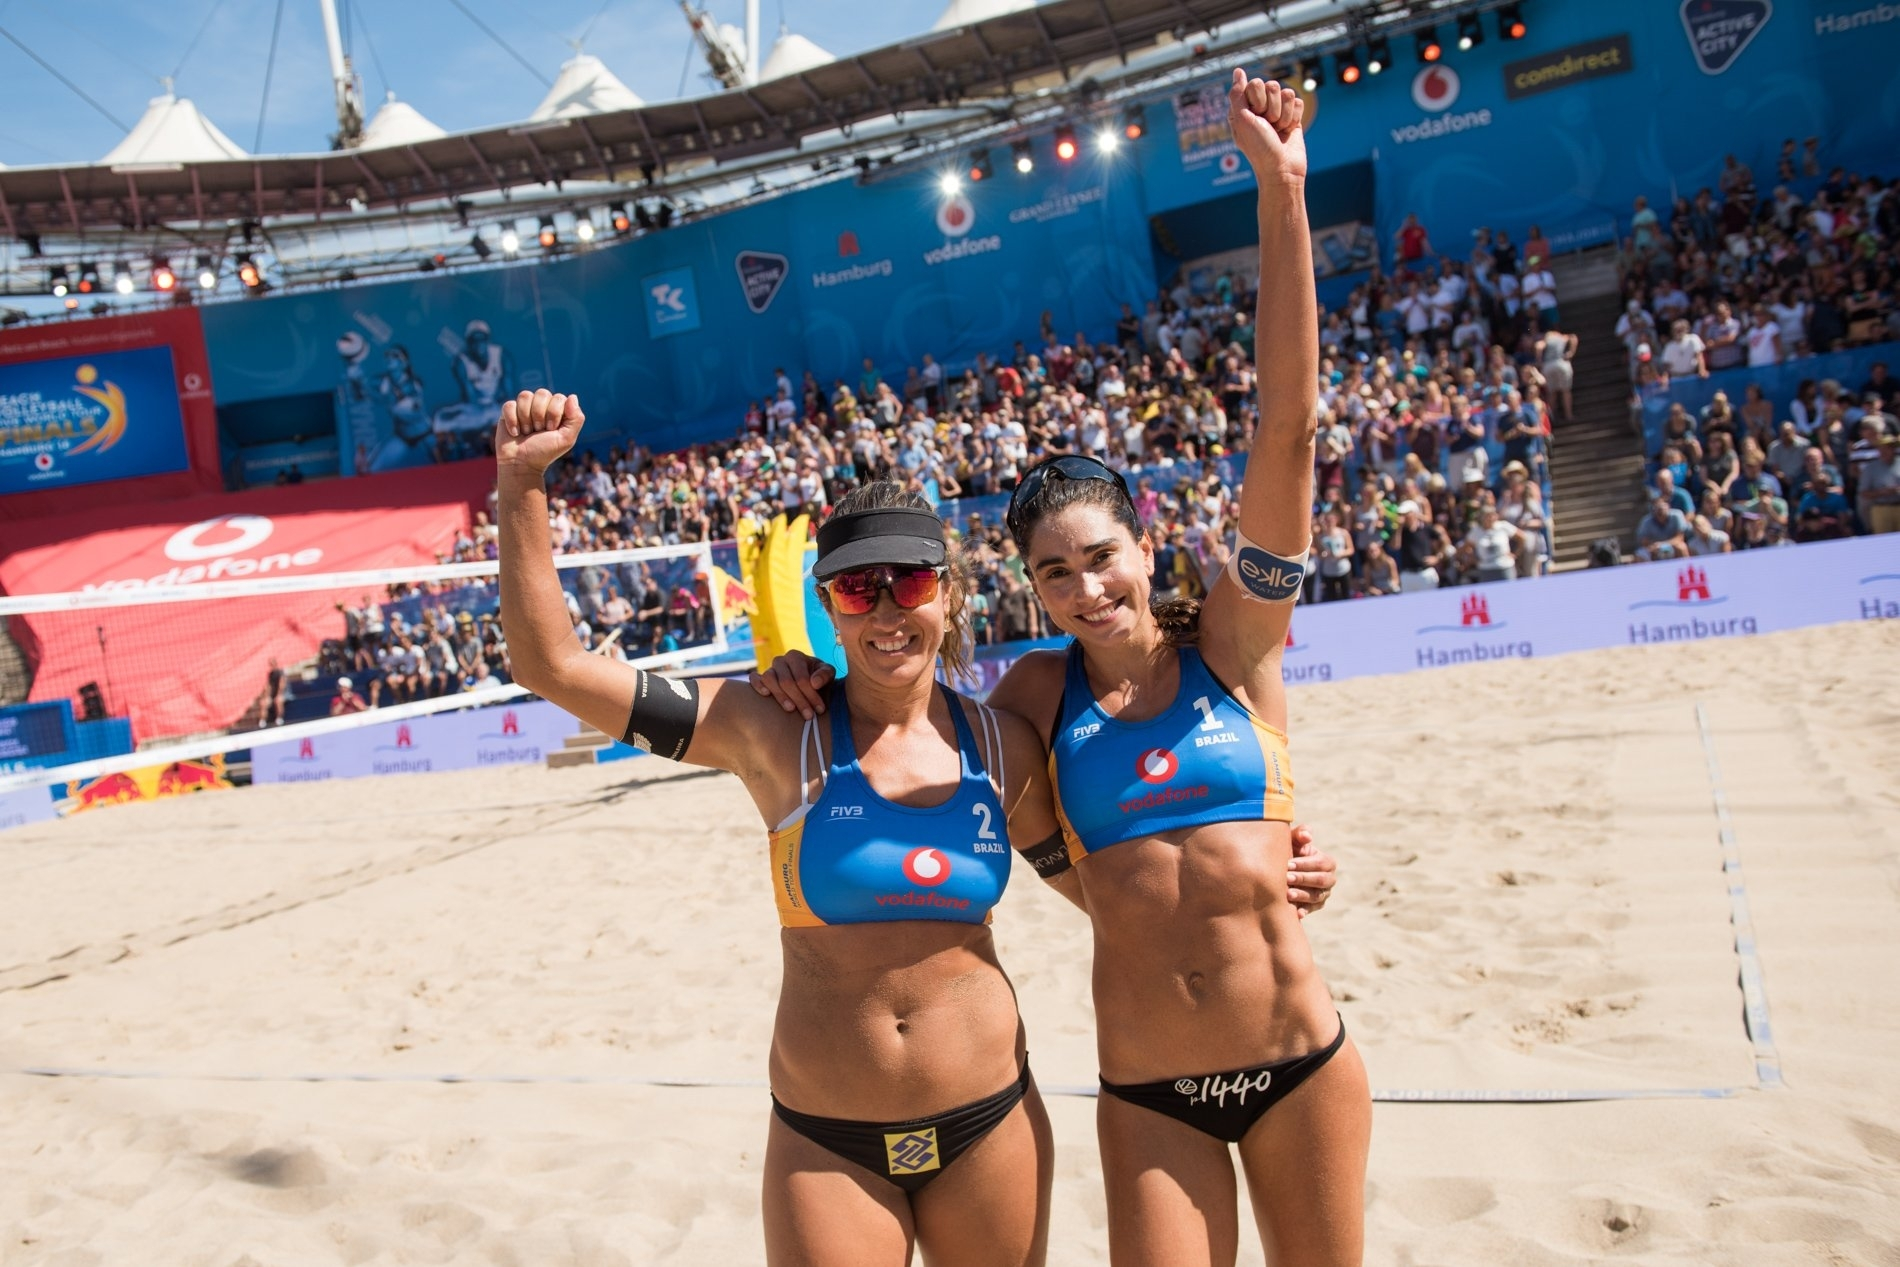 Maria (left) and Carol celebrate their victory to seal their passage into the semifinals